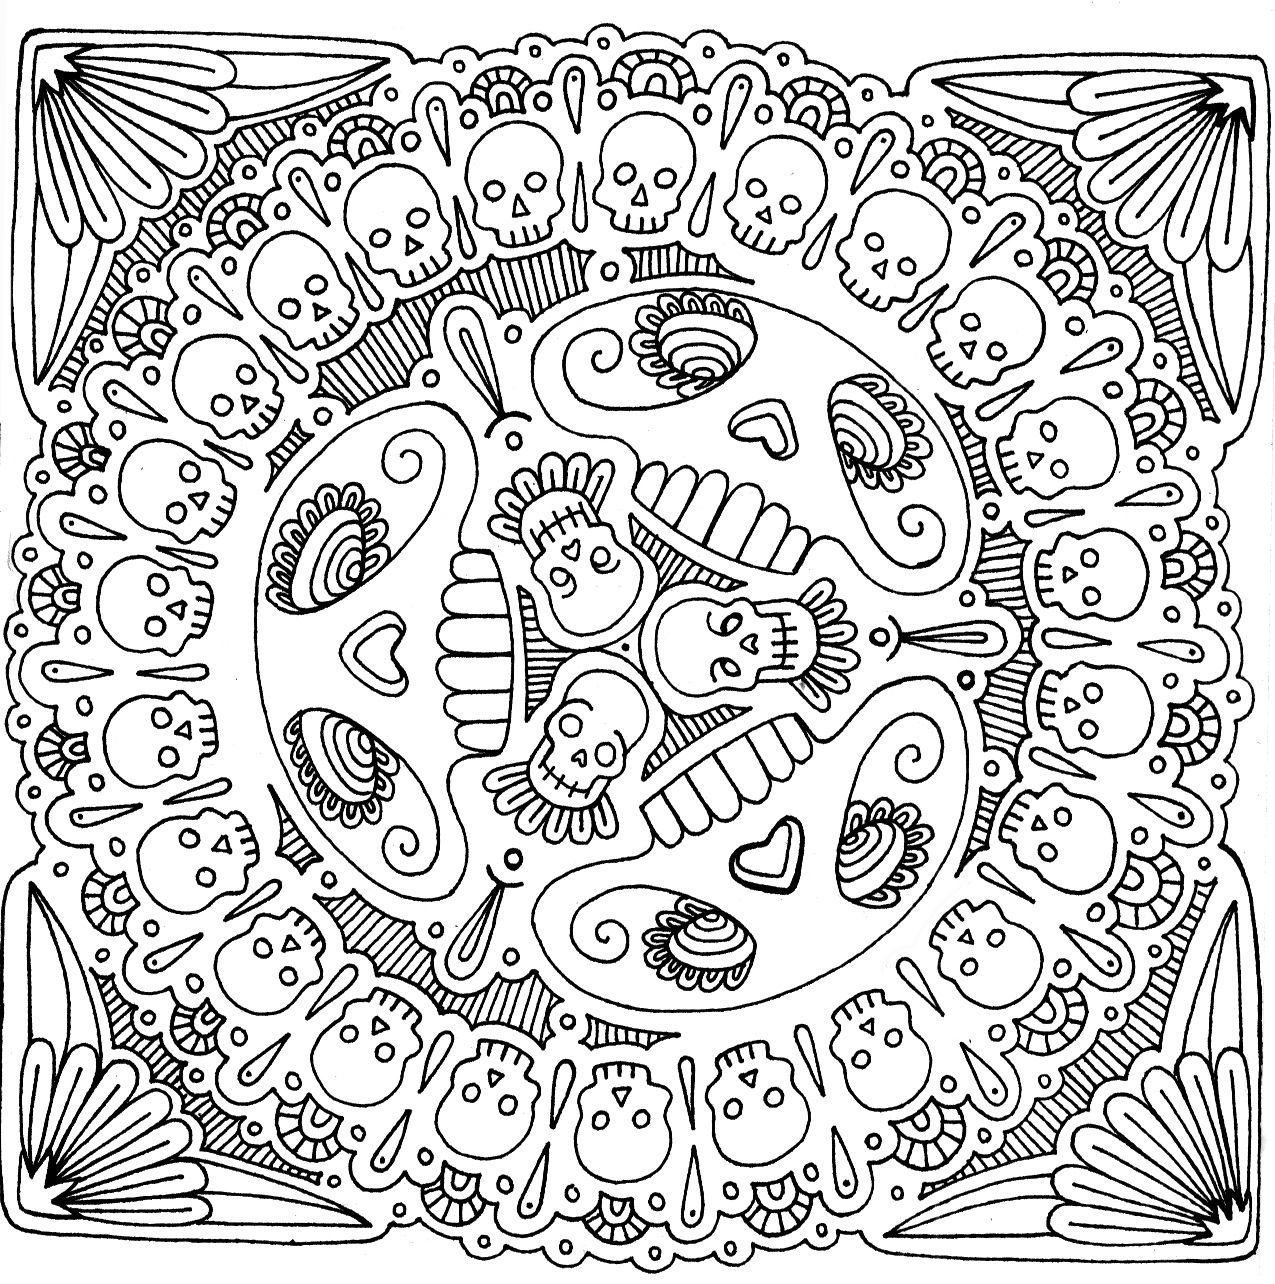 american hippie art coloring pages skull mandala coisas